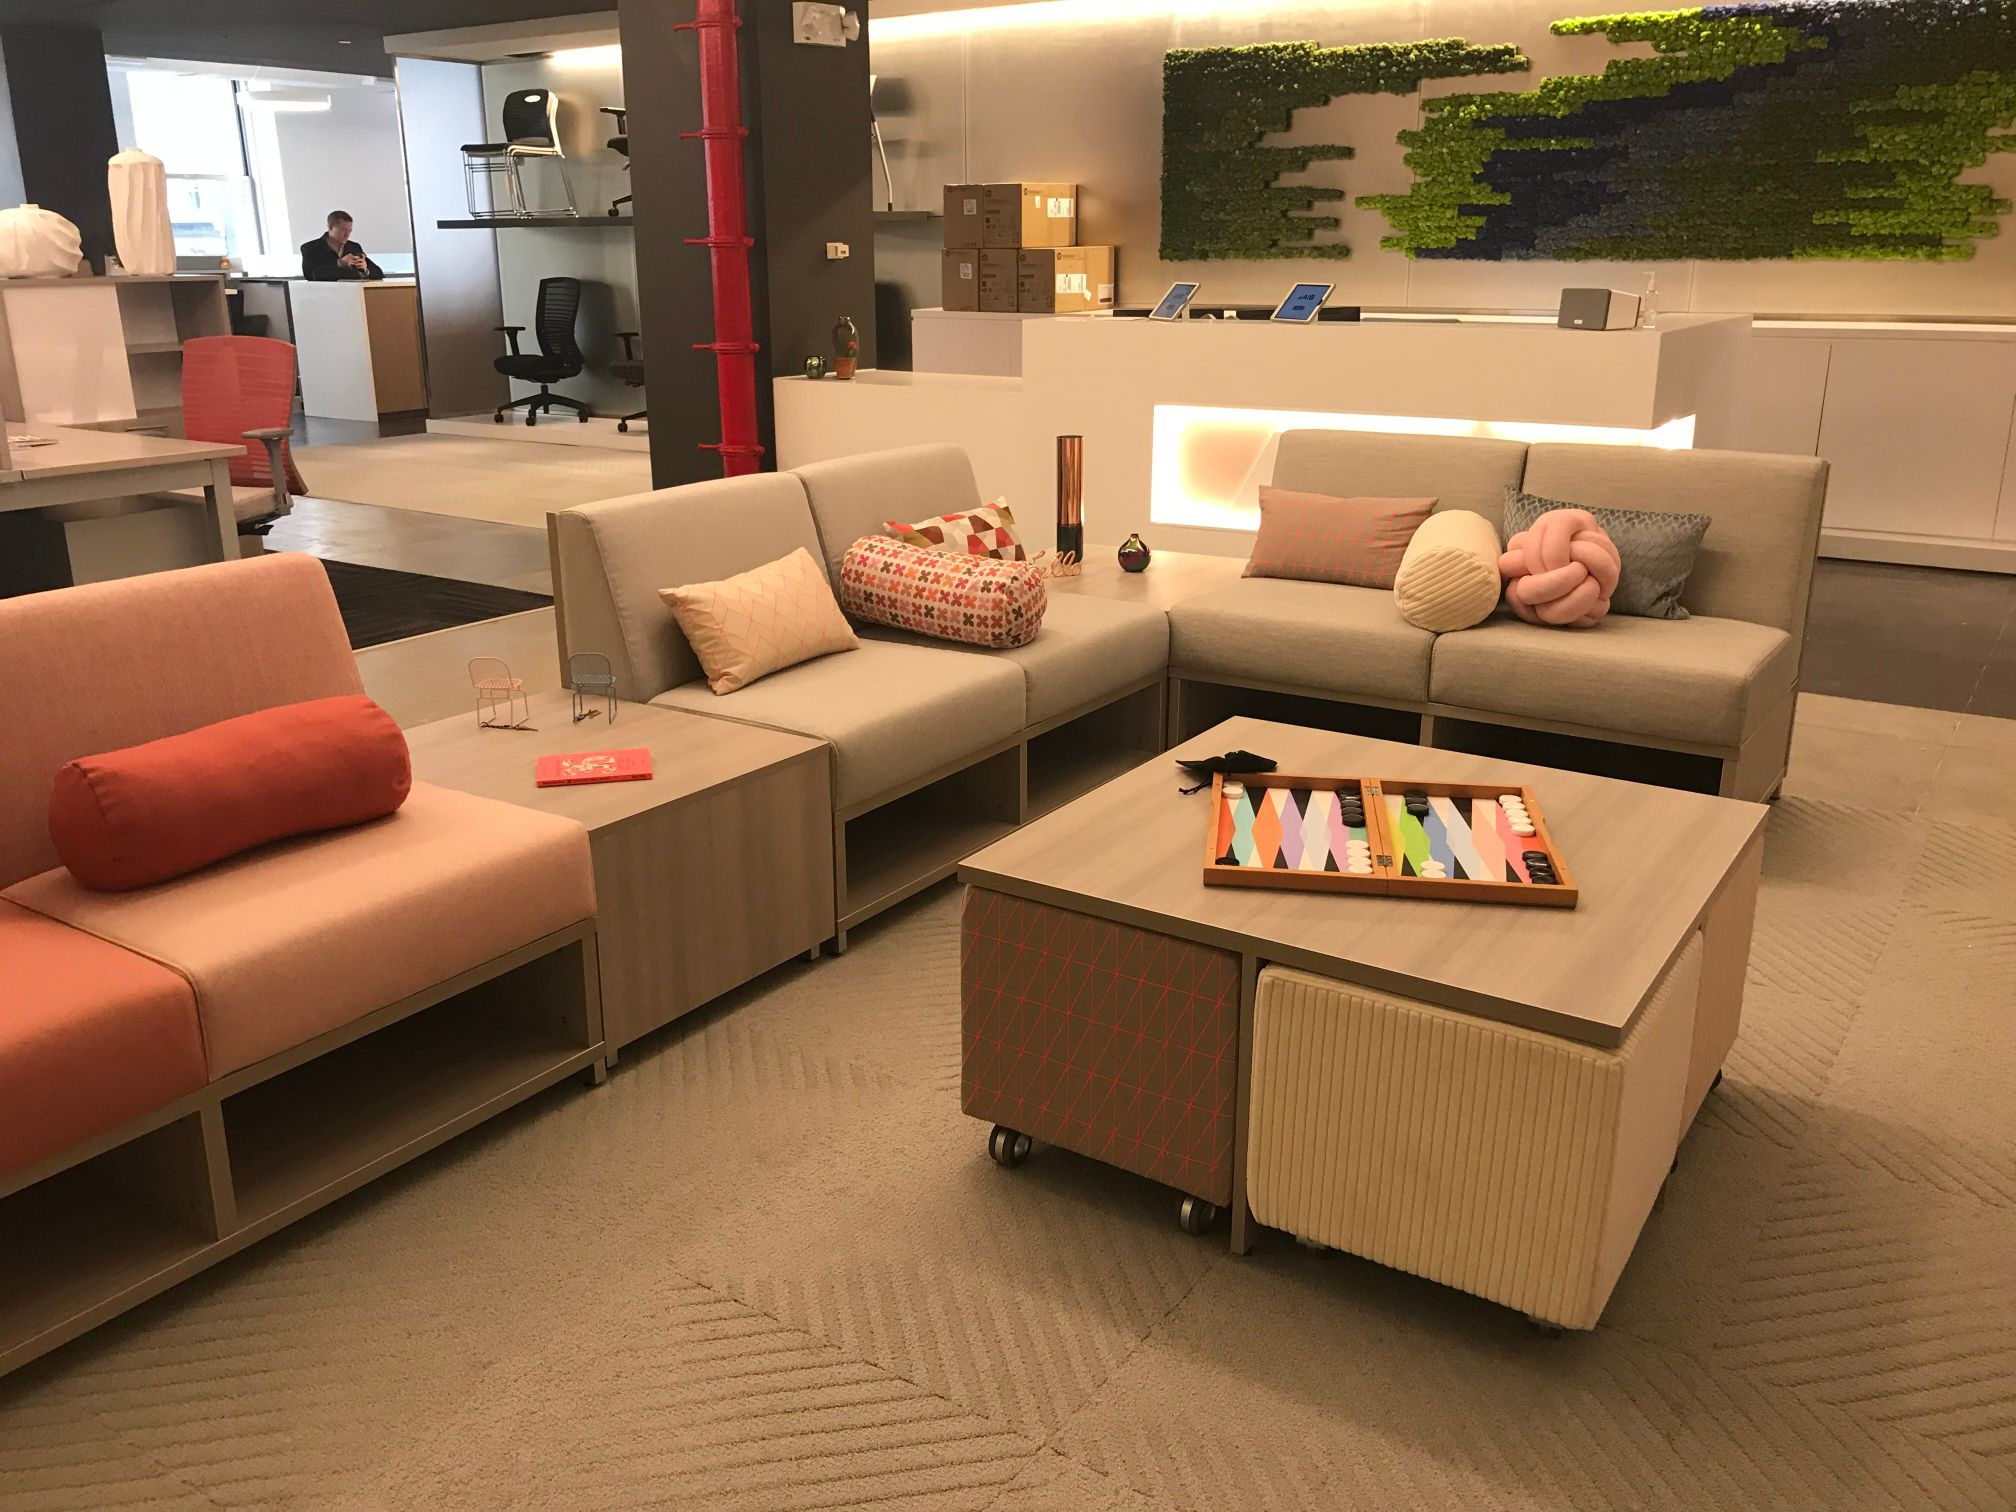 lb-lounge-lowback-seating-with-volker-seating-and-table-ny-showroom_md